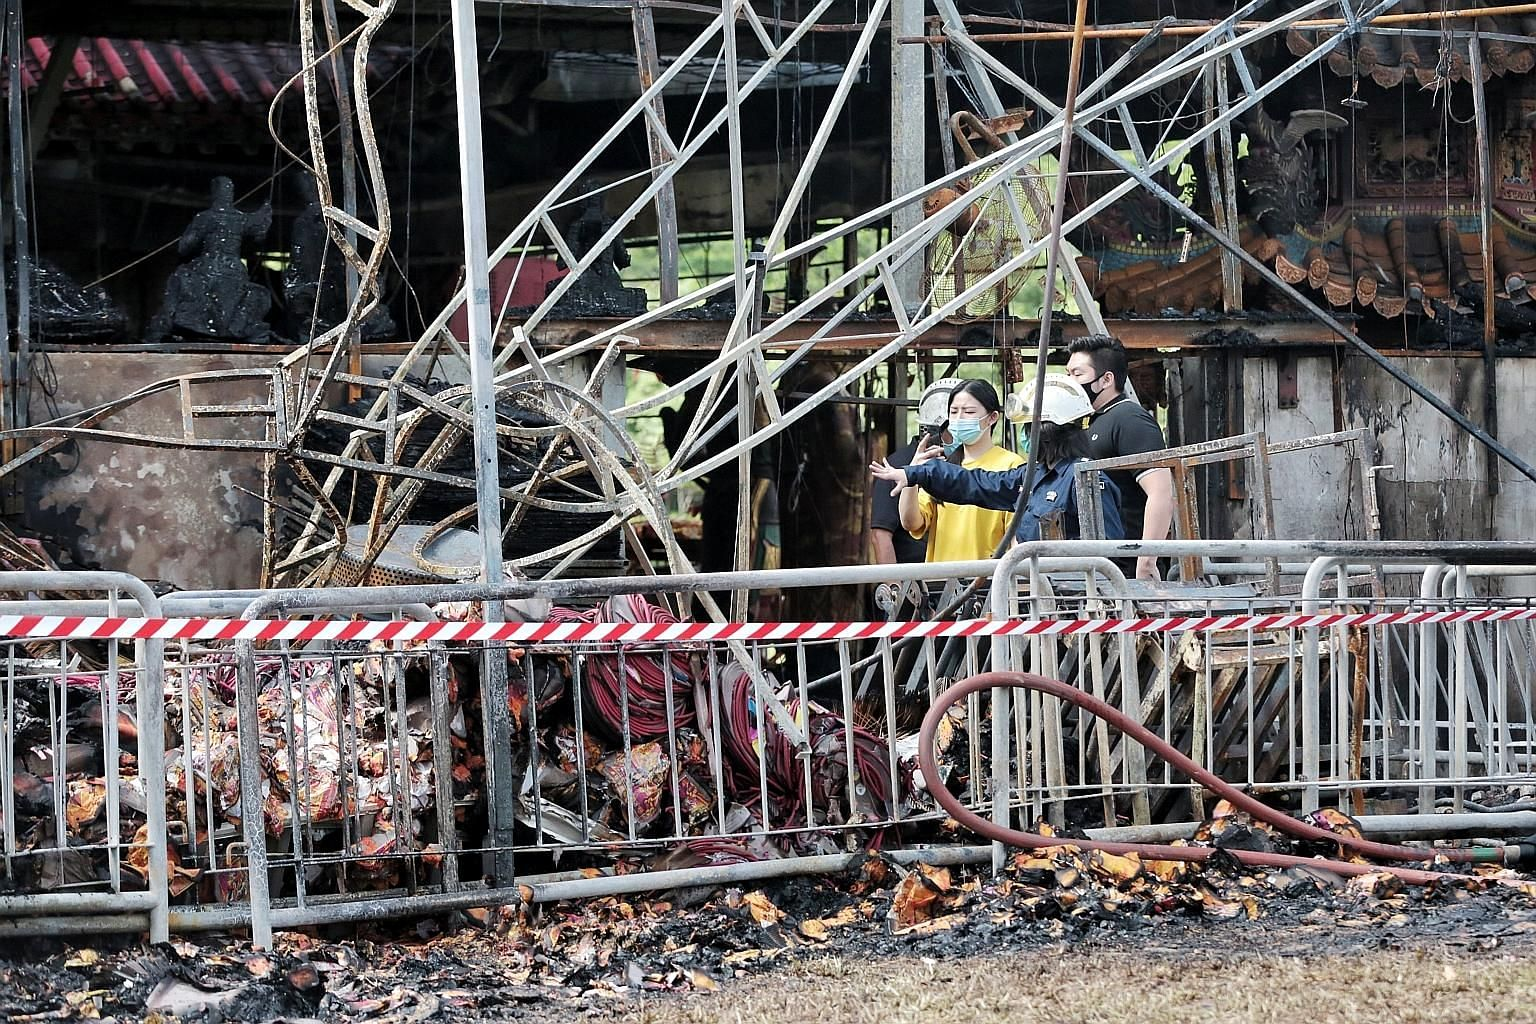 The blaze at the Sembawang God of Wealth Temple, which took three hours for 62 firefighters to put out, claimed the lives of three dogs. The animals were among seven stray dogs that were cared for by the temple whose 9.44m-tall statue of the God of W